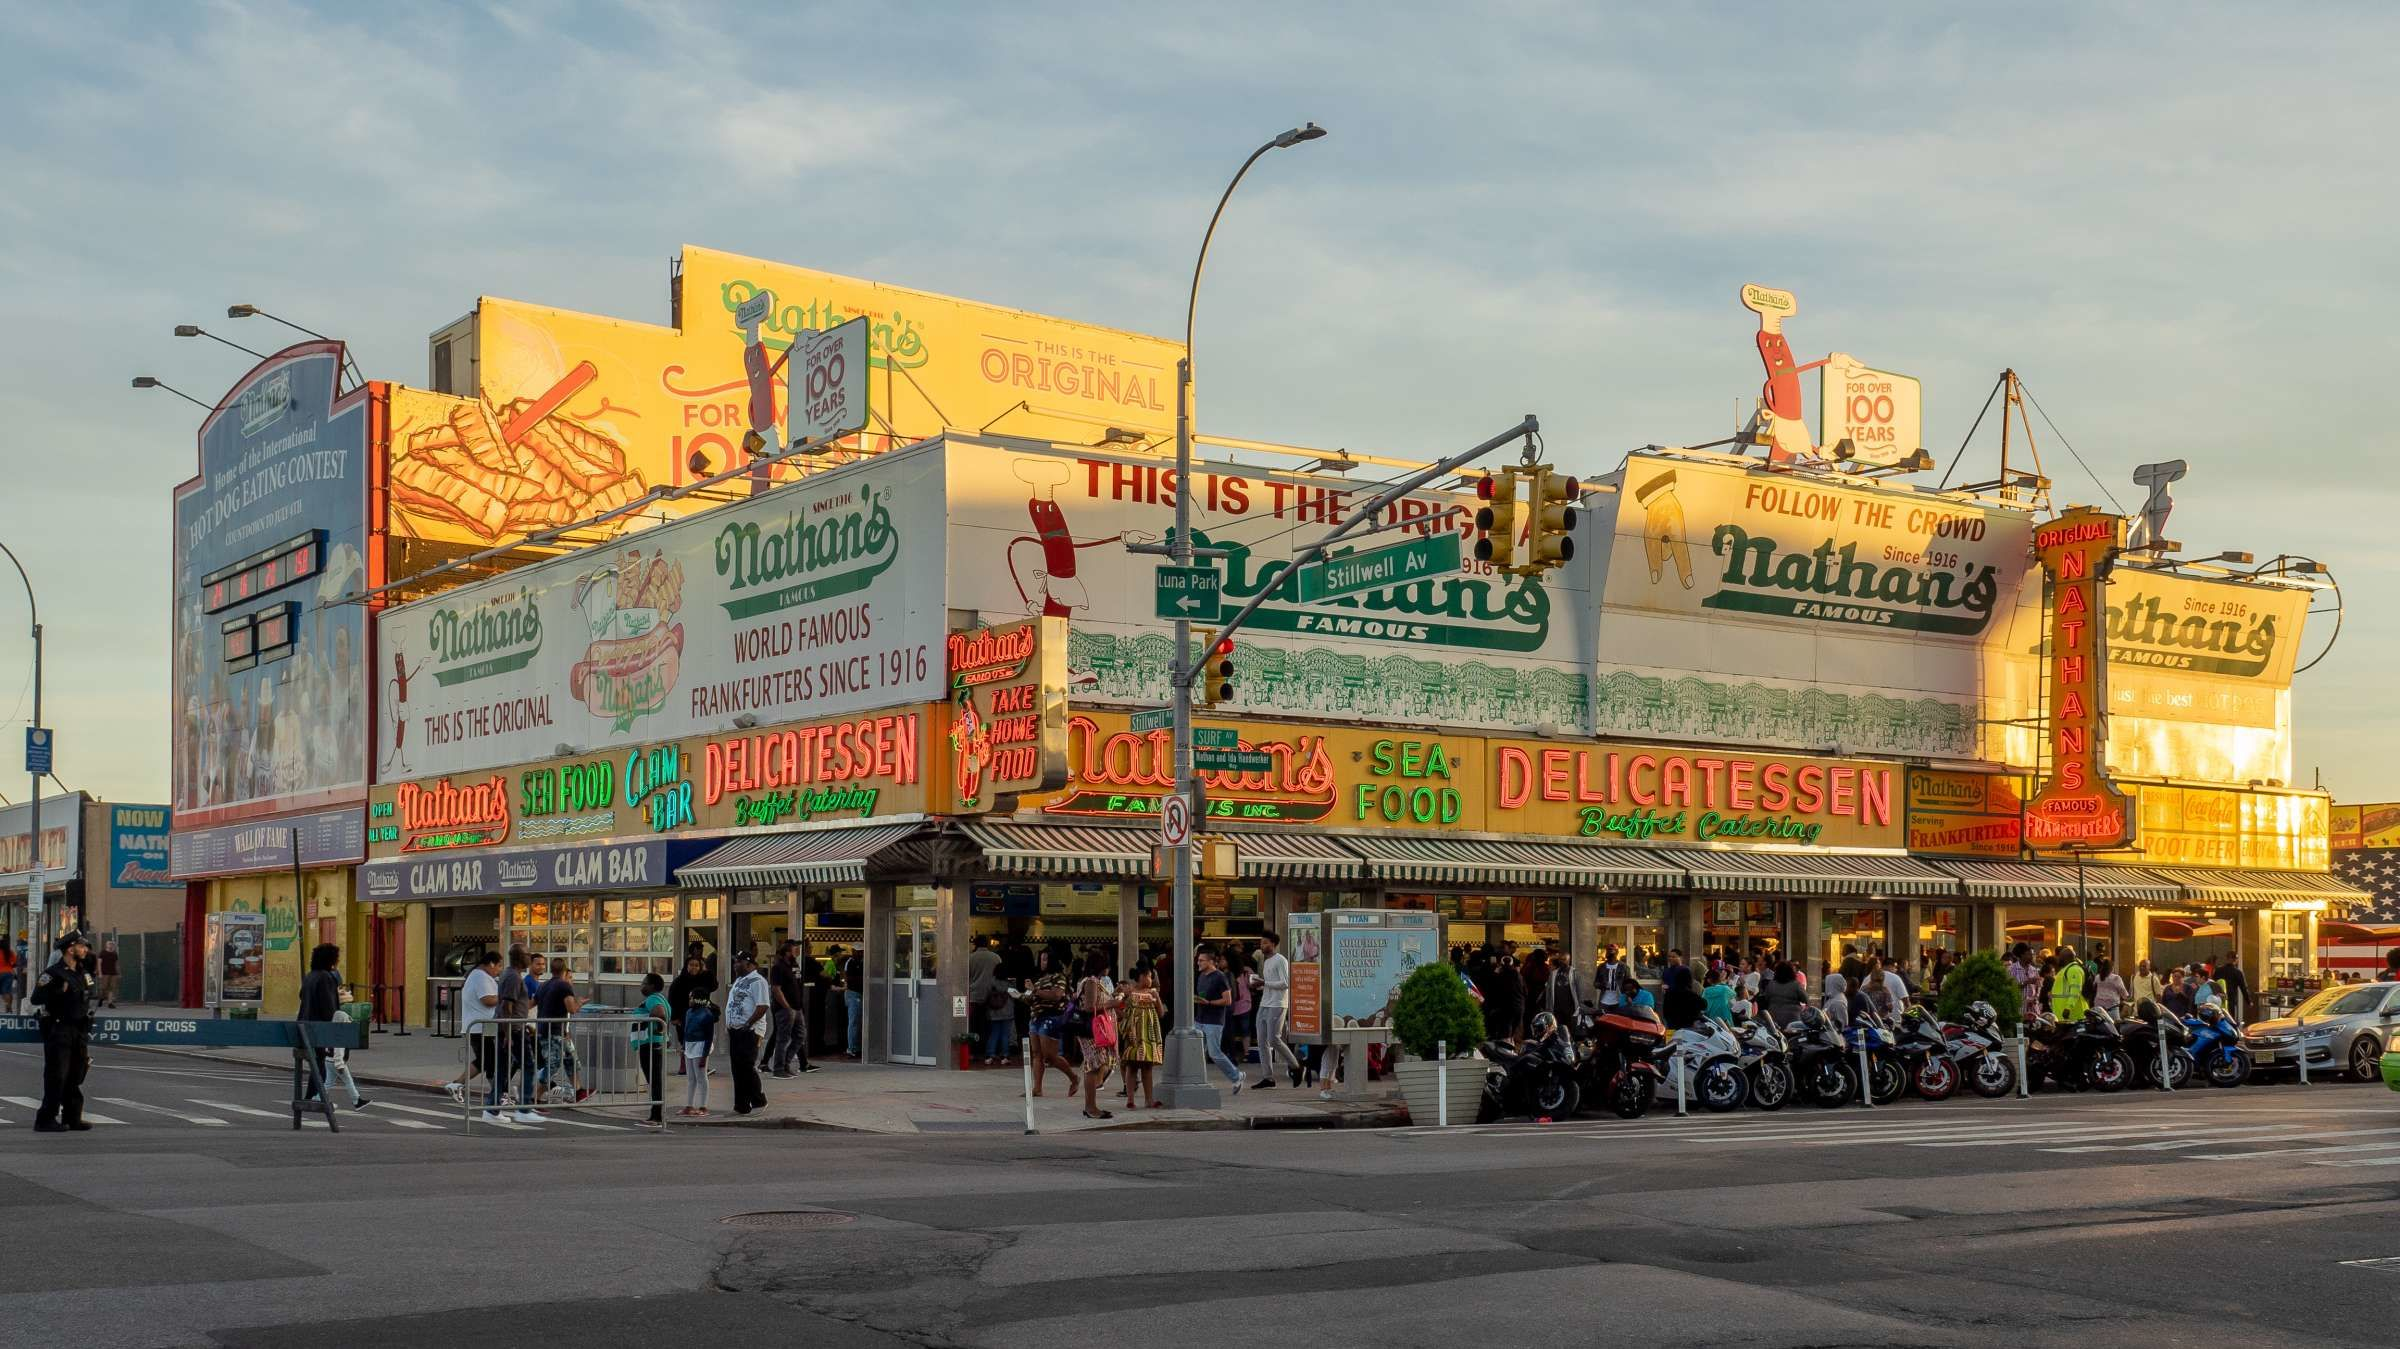 14 Hot and Juicy Facts About Nathan's Famous